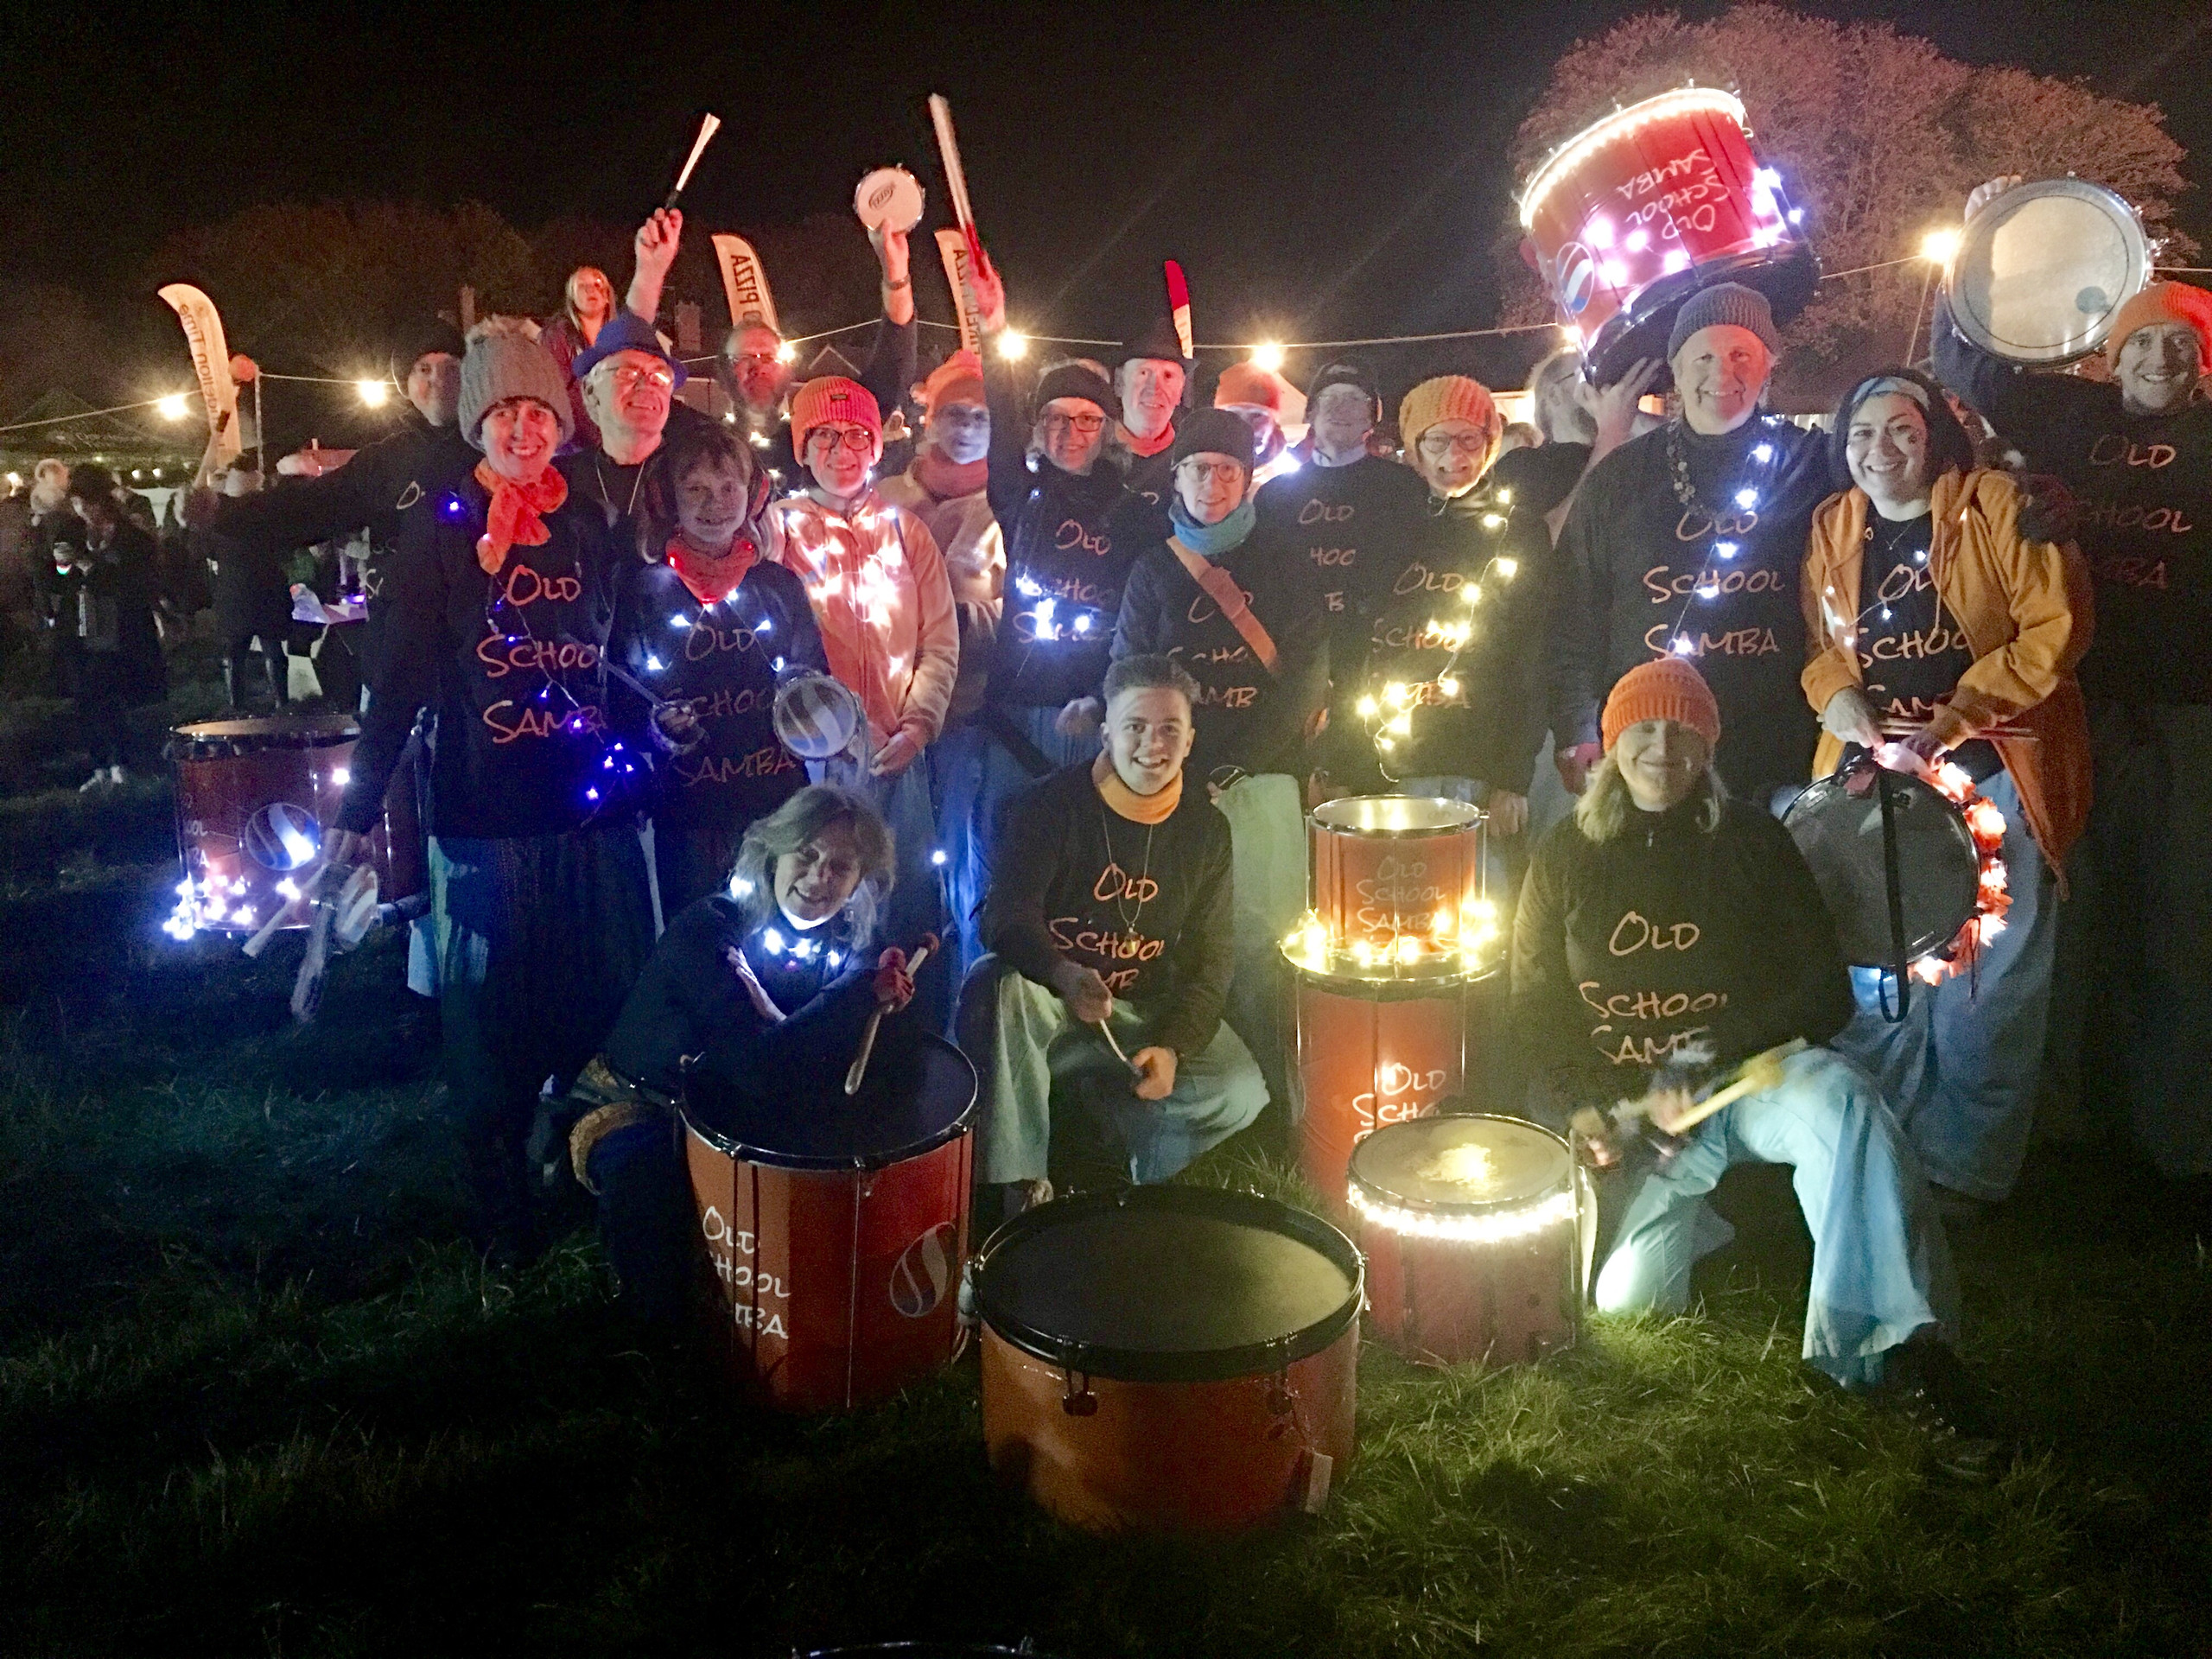 Group shot of Old School Samba a the West Farleigh Fireworks